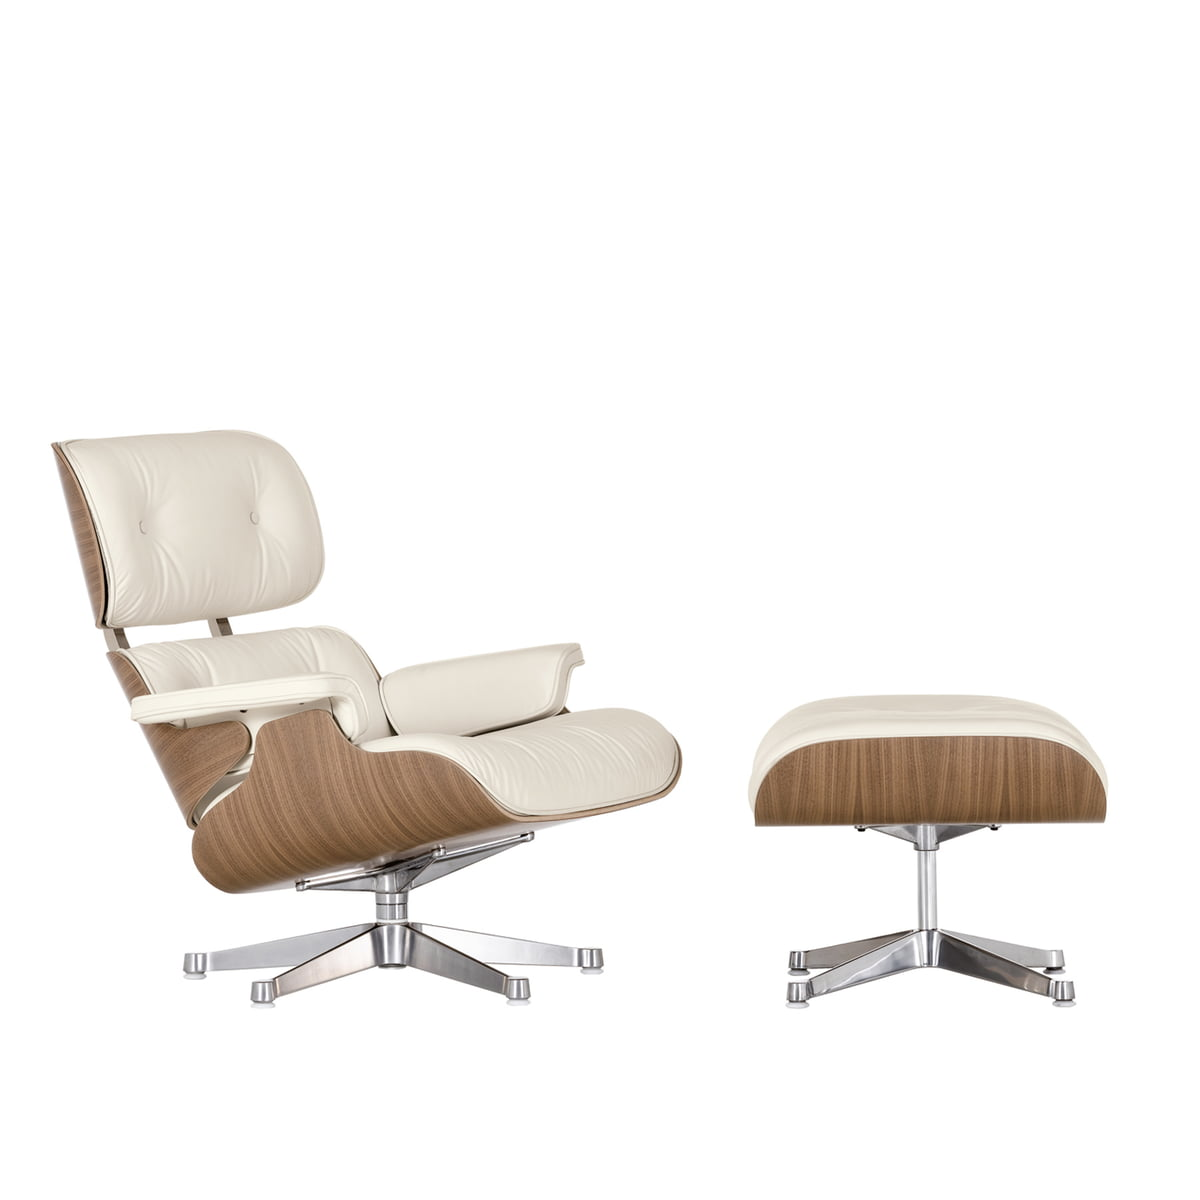 matching ottoman for vitra lounge chair white - vitra eames lounge chair  ottoman  walnut white